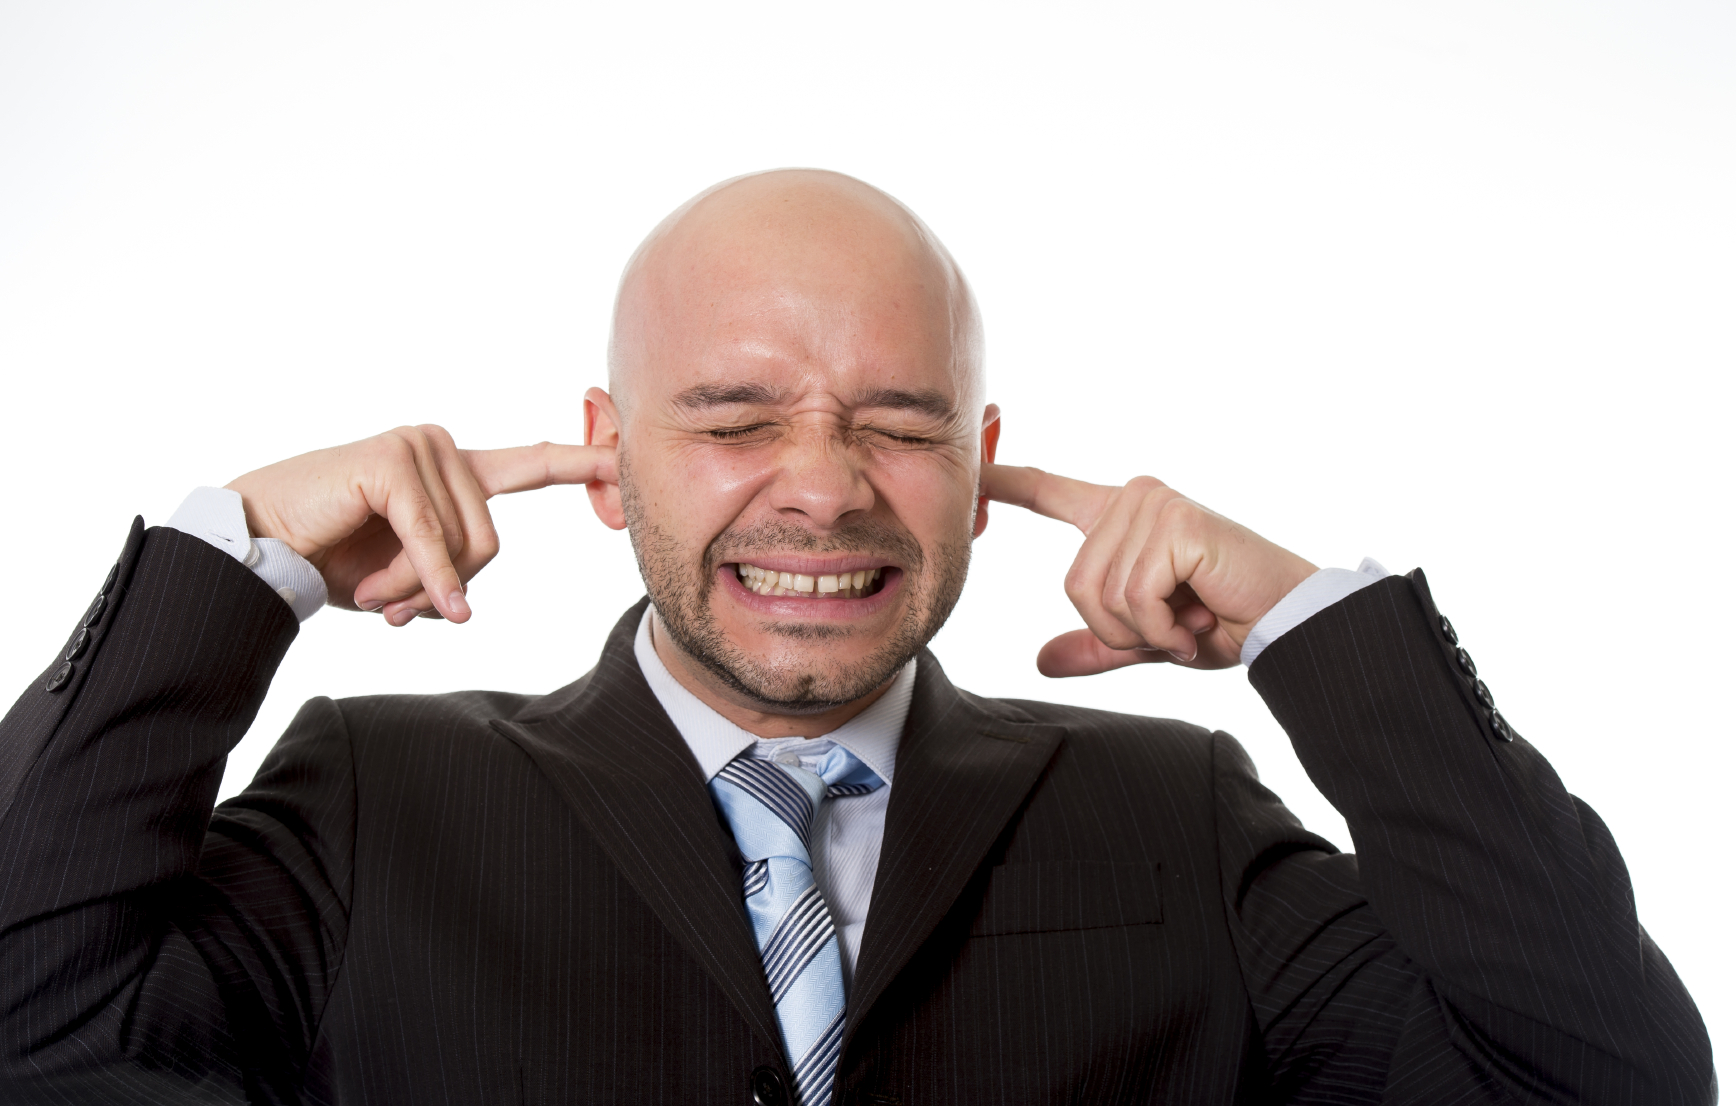 Hispanic or Brazilian businessman wearing suit and tie in stress covering his ears with fingers hoping for noise to stop and relax to come isolated on white background